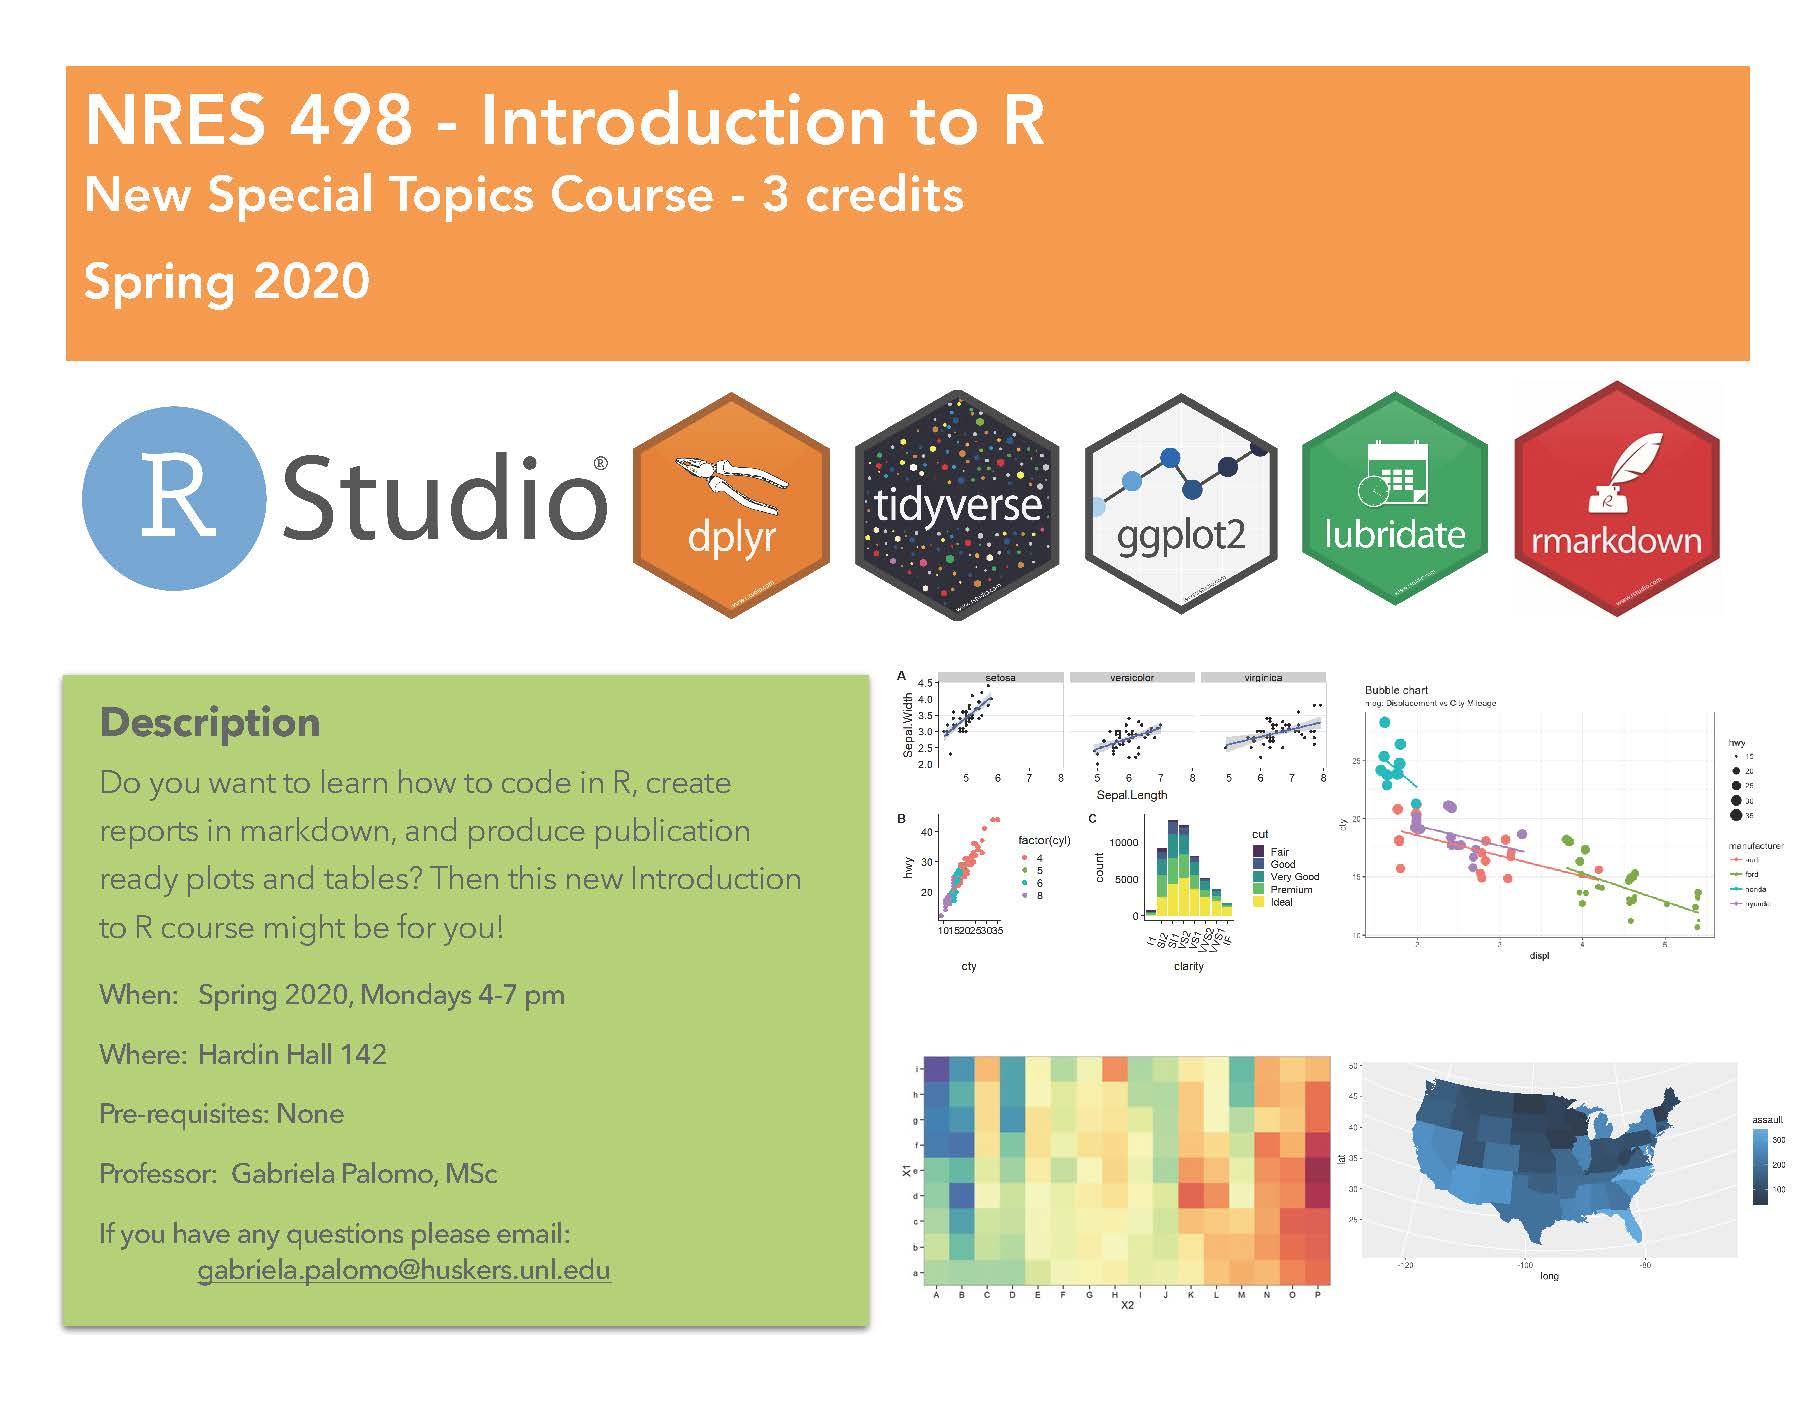 A new RStudio course is being offered to University of Nebraska-Lincoln students.